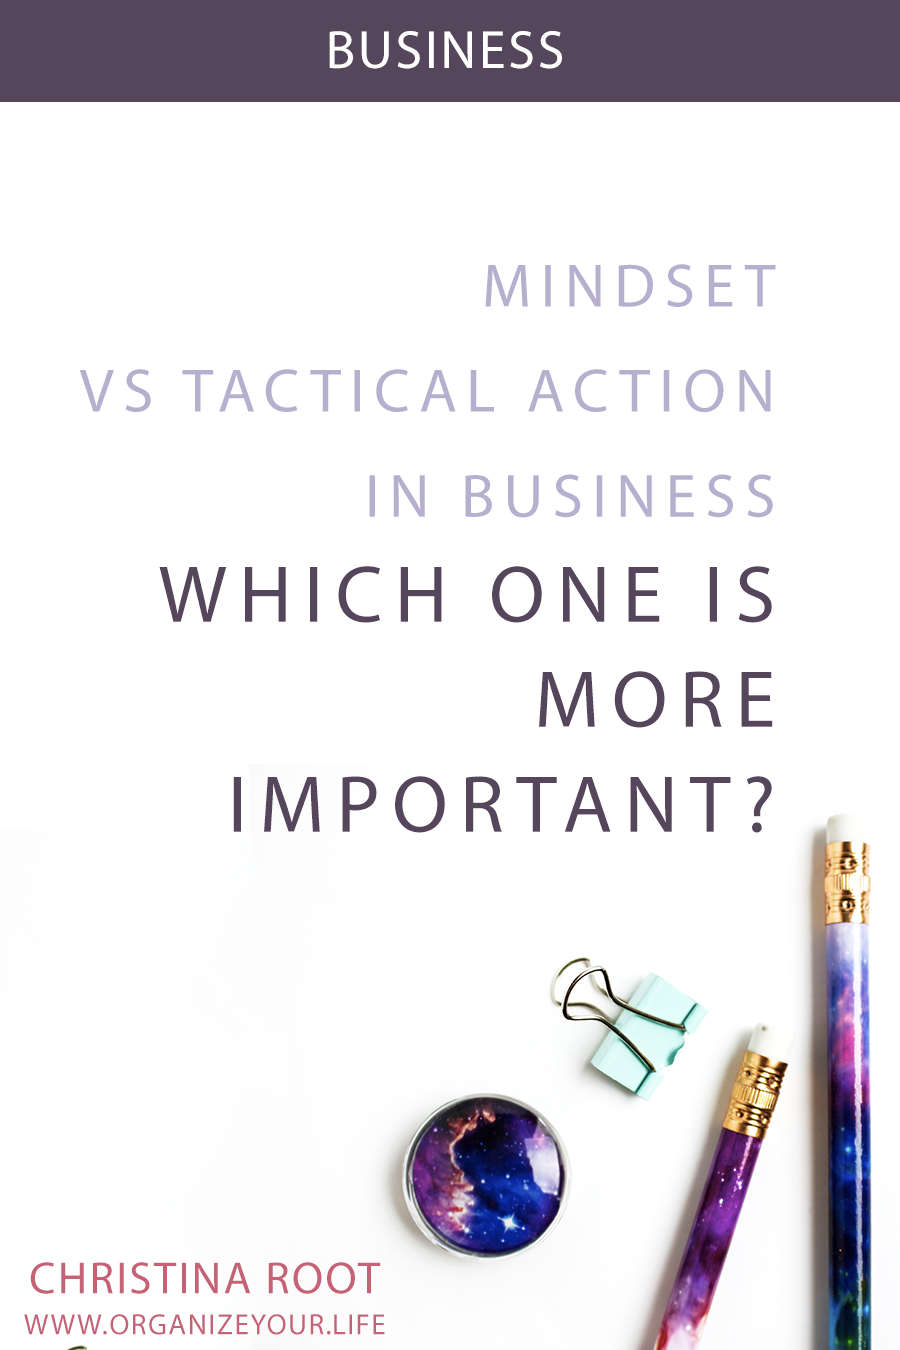 Money mindset vs tactical action in business: which is more important?